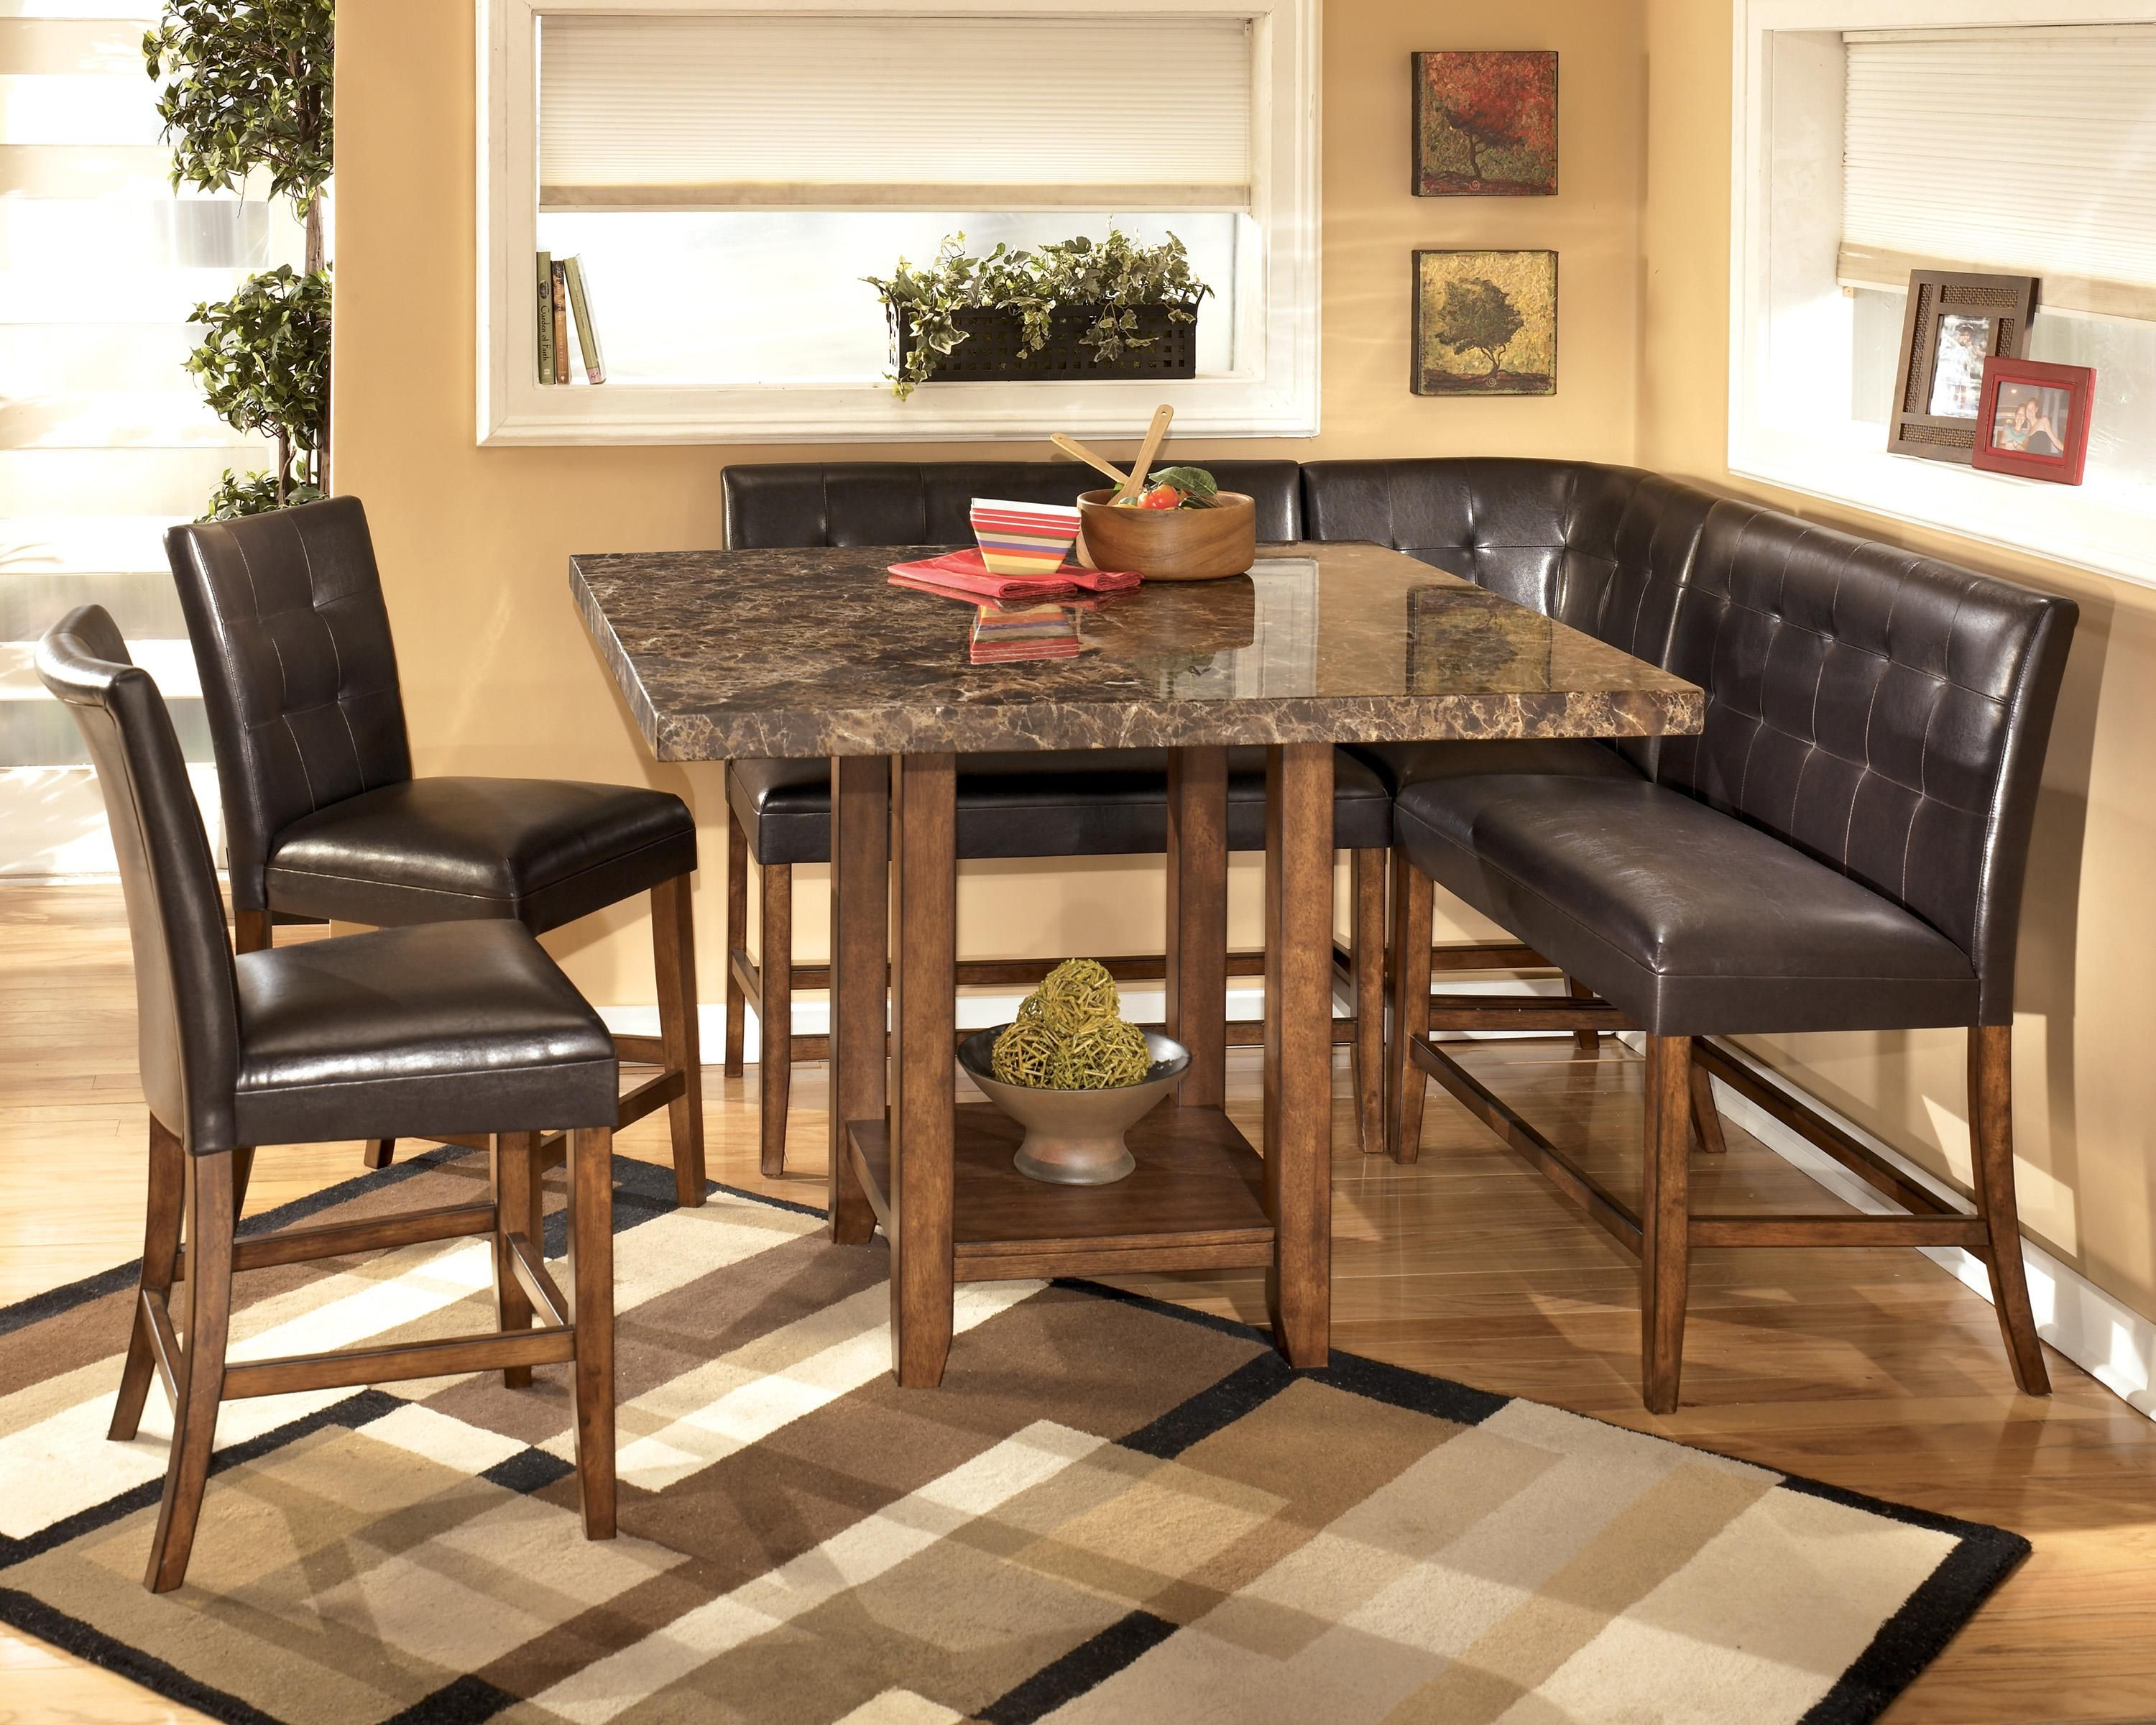 Shop For The Signature Design By Ashley Lacey Square Counter Height Table At Reids Countrywide Furniture